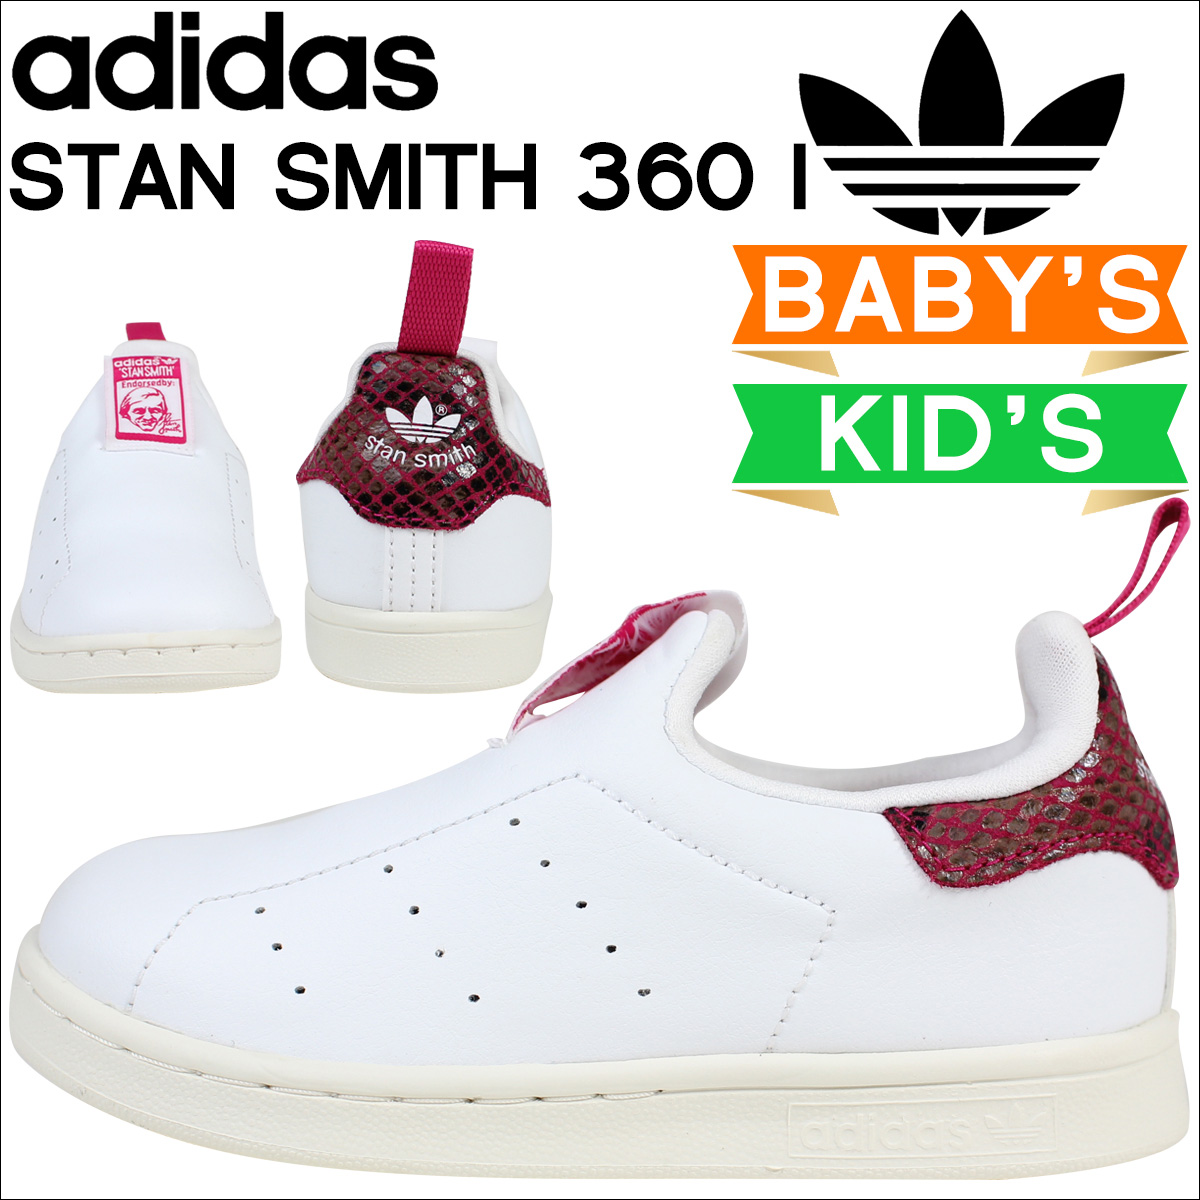 adidas stan smith kids shoes